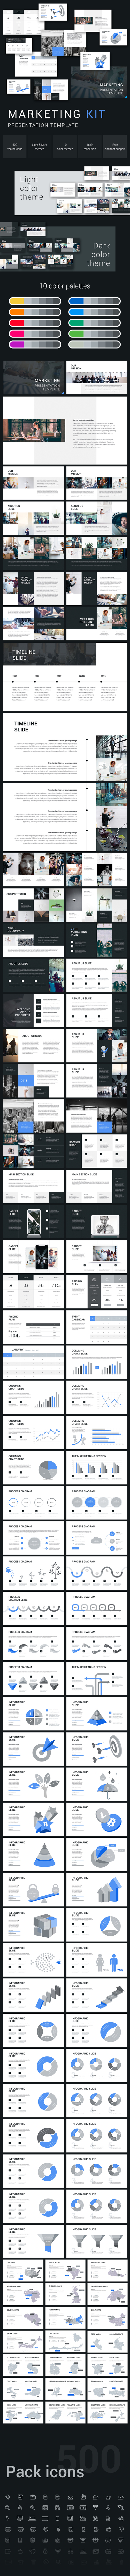 Marketing Kit Clean Powerpoint - Business PowerPoint Templates